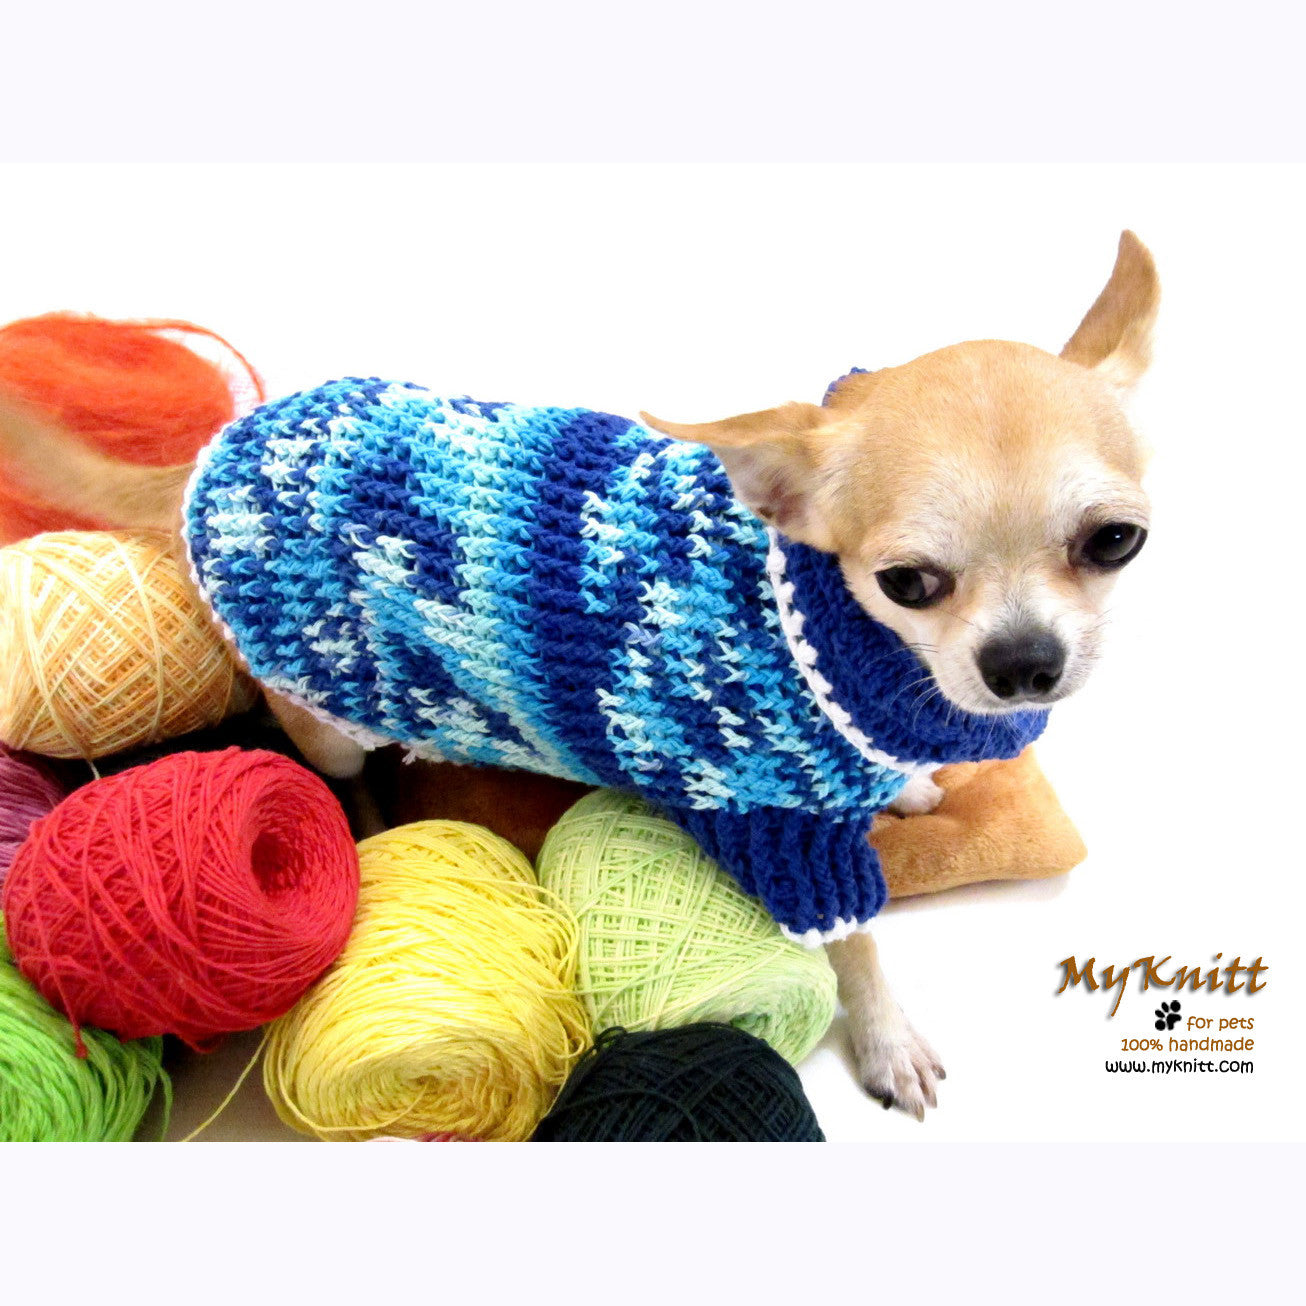 Cute Teacup Chihuahua Sweater Warm Knitted Sweater DK858 by Myknitt